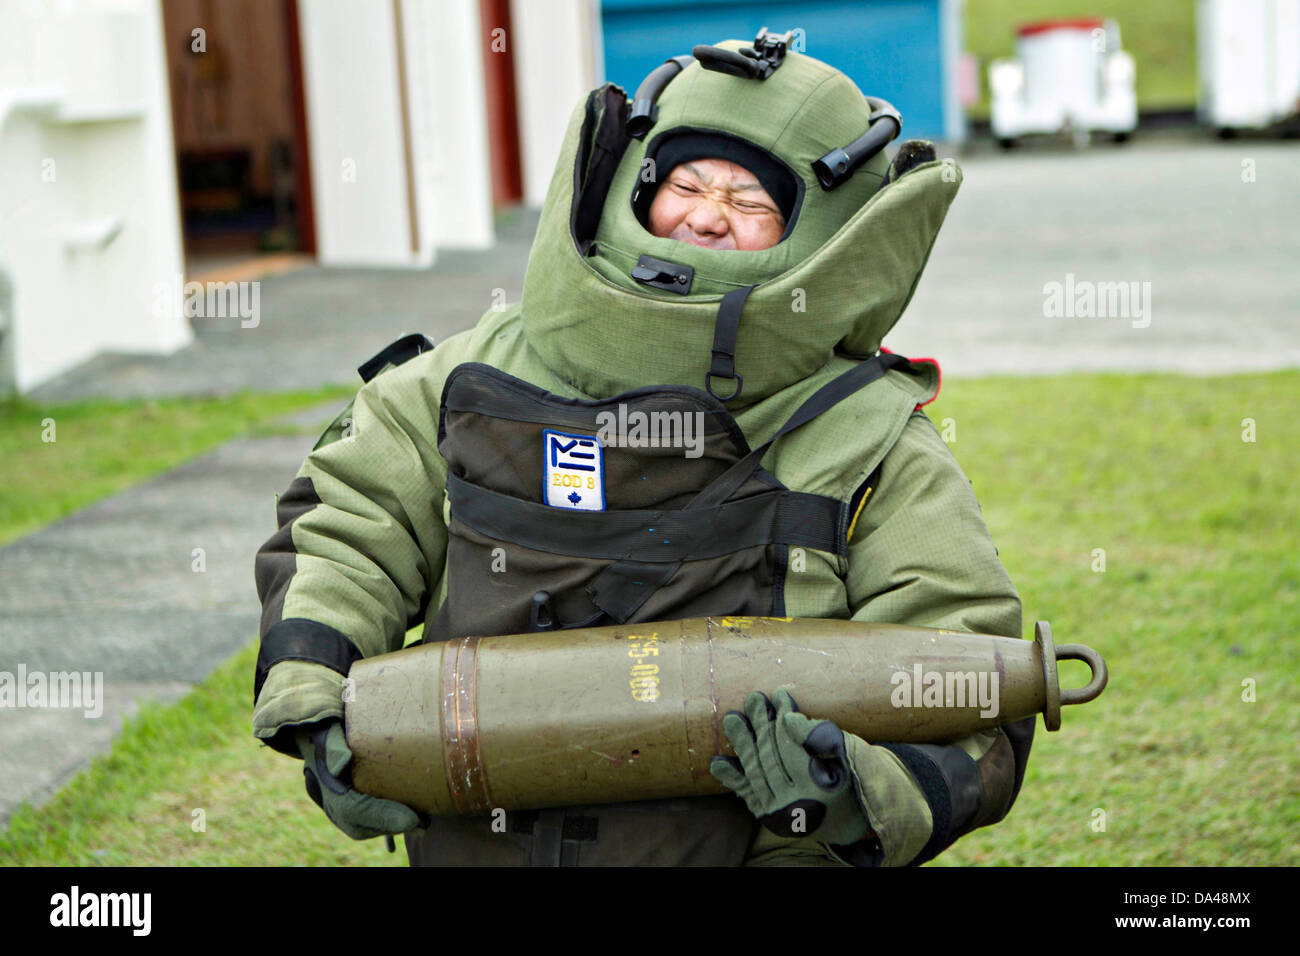 Japan Ground Self-Defense Force soldier Sgt. Maj. Arata Hamaguchi participates in simulated explosive ordnance disposal - Stock Image